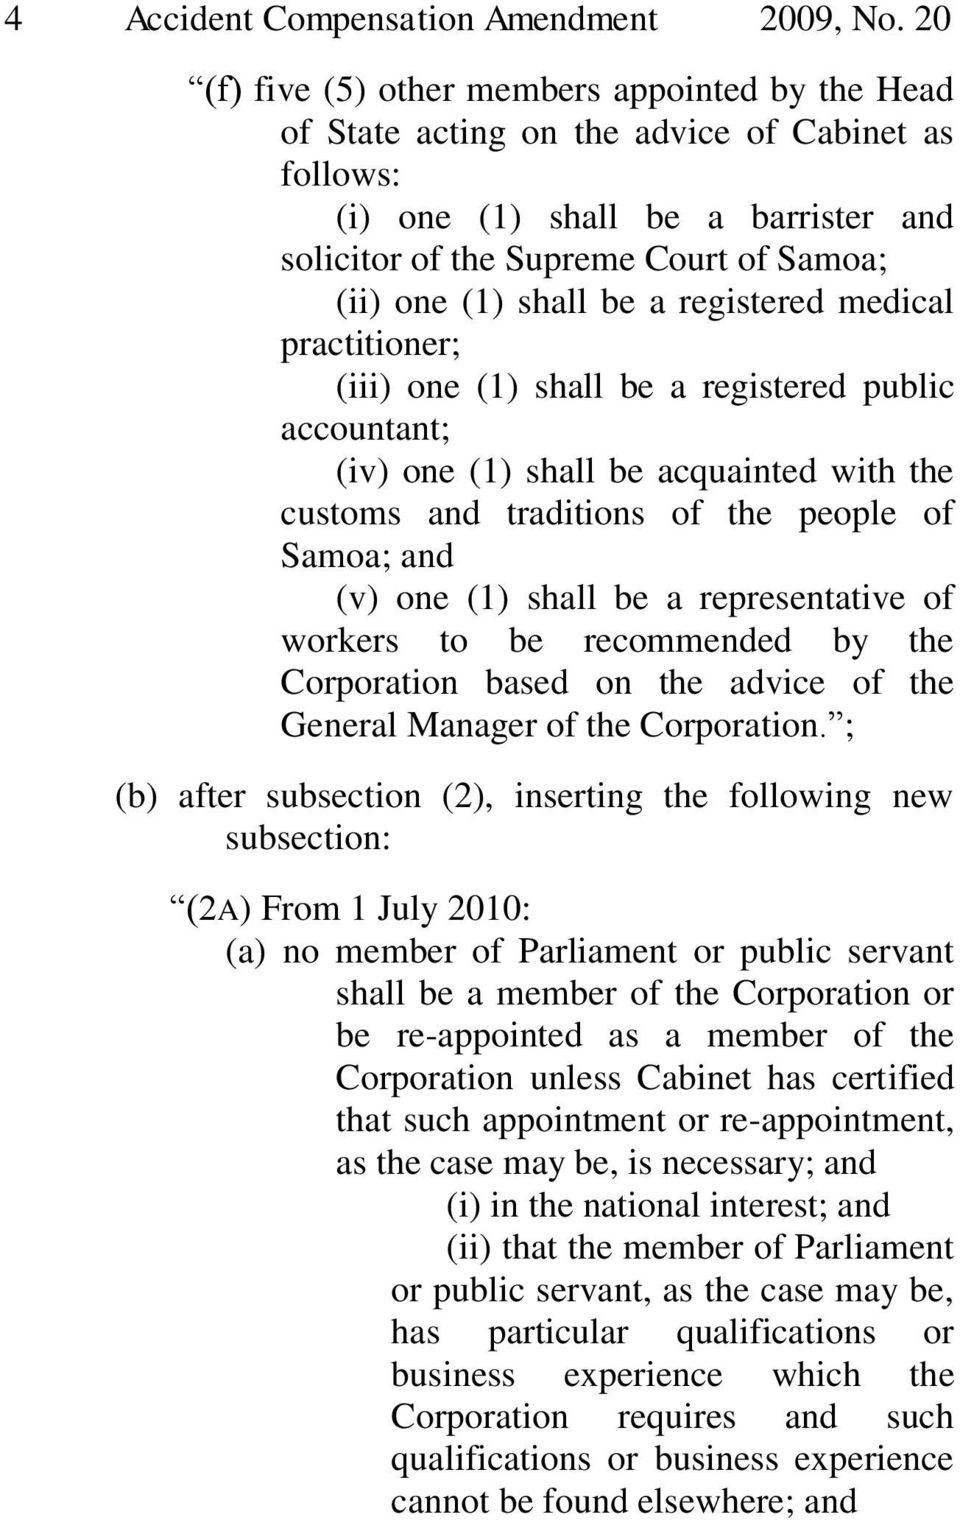 shall be a registered medical practitioner; (iii) one (1) shall be a registered public accountant; (iv) one (1) shall be acquainted with the customs and traditions of the people of Samoa; and (v) one